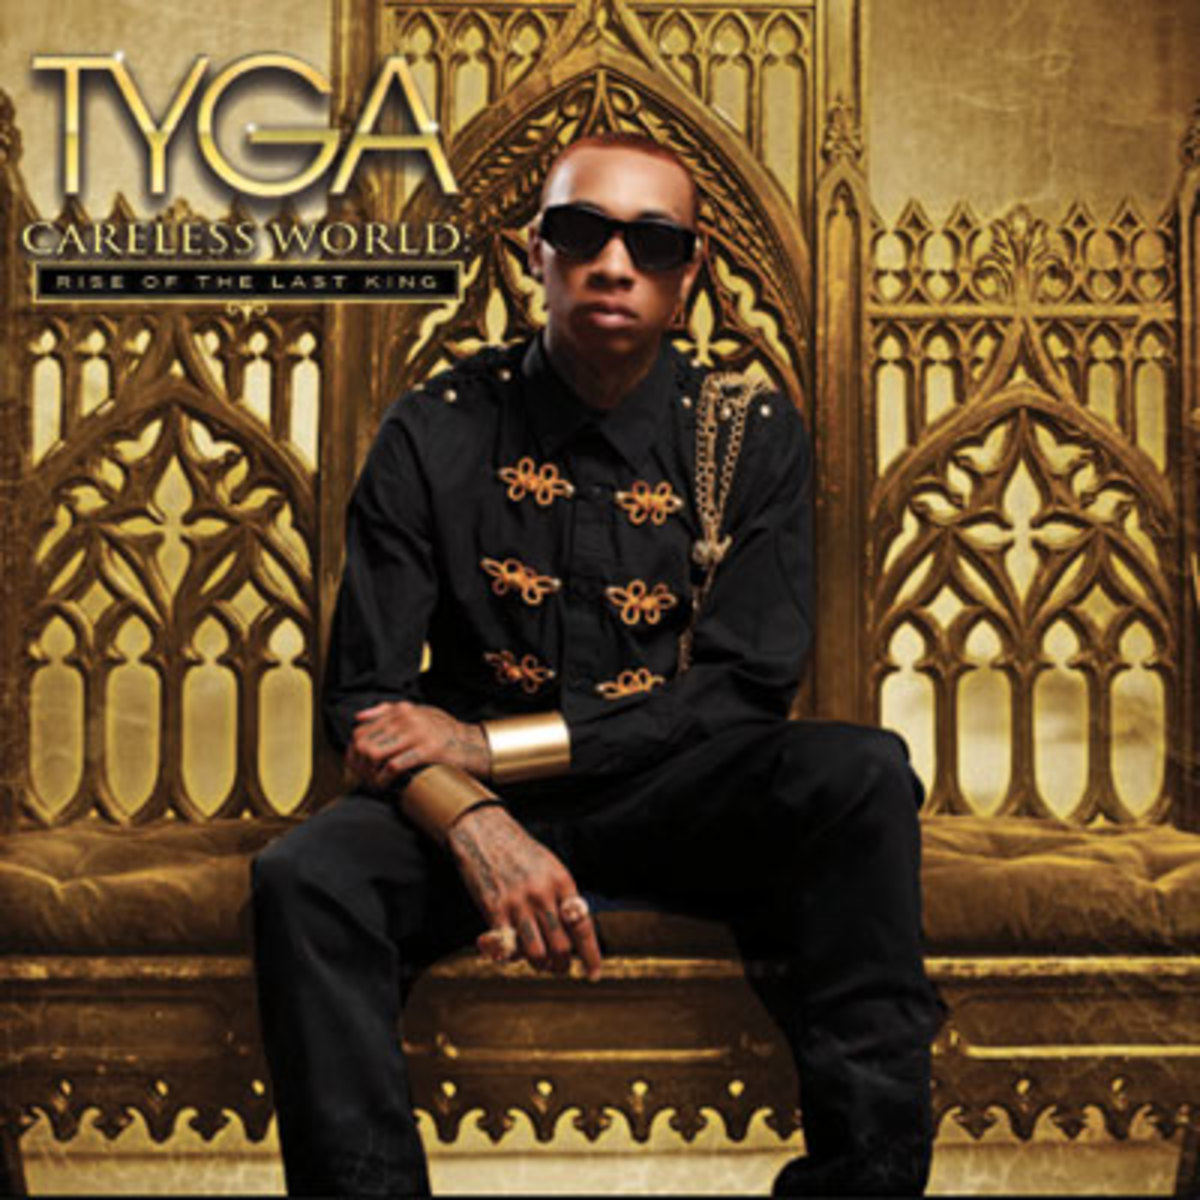 tyga-carelessworld.jpg